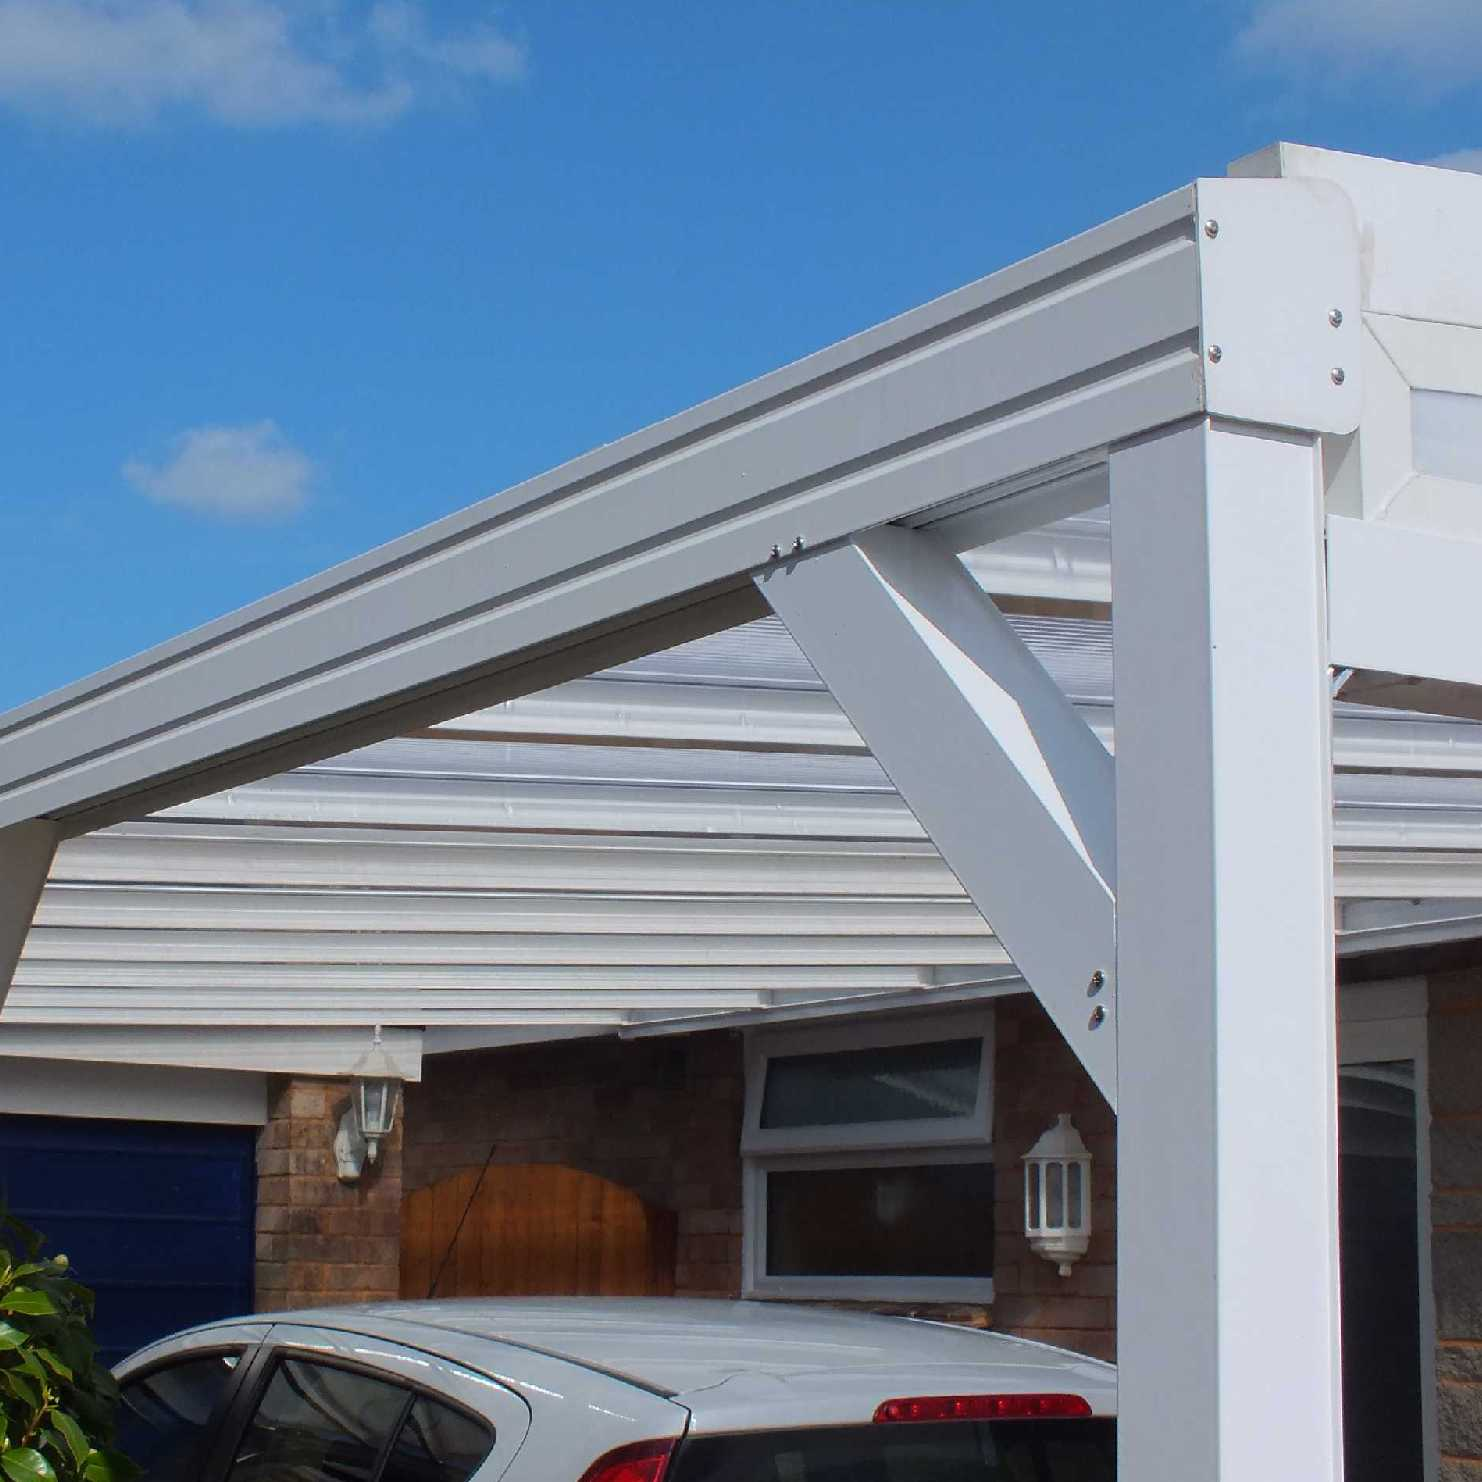 Great deals on Omega Smart White Lean-To Canopy with 16mm Polycarbonate Glazing - 10.6m (W) x 4.0m (P), (5) Supporting Posts